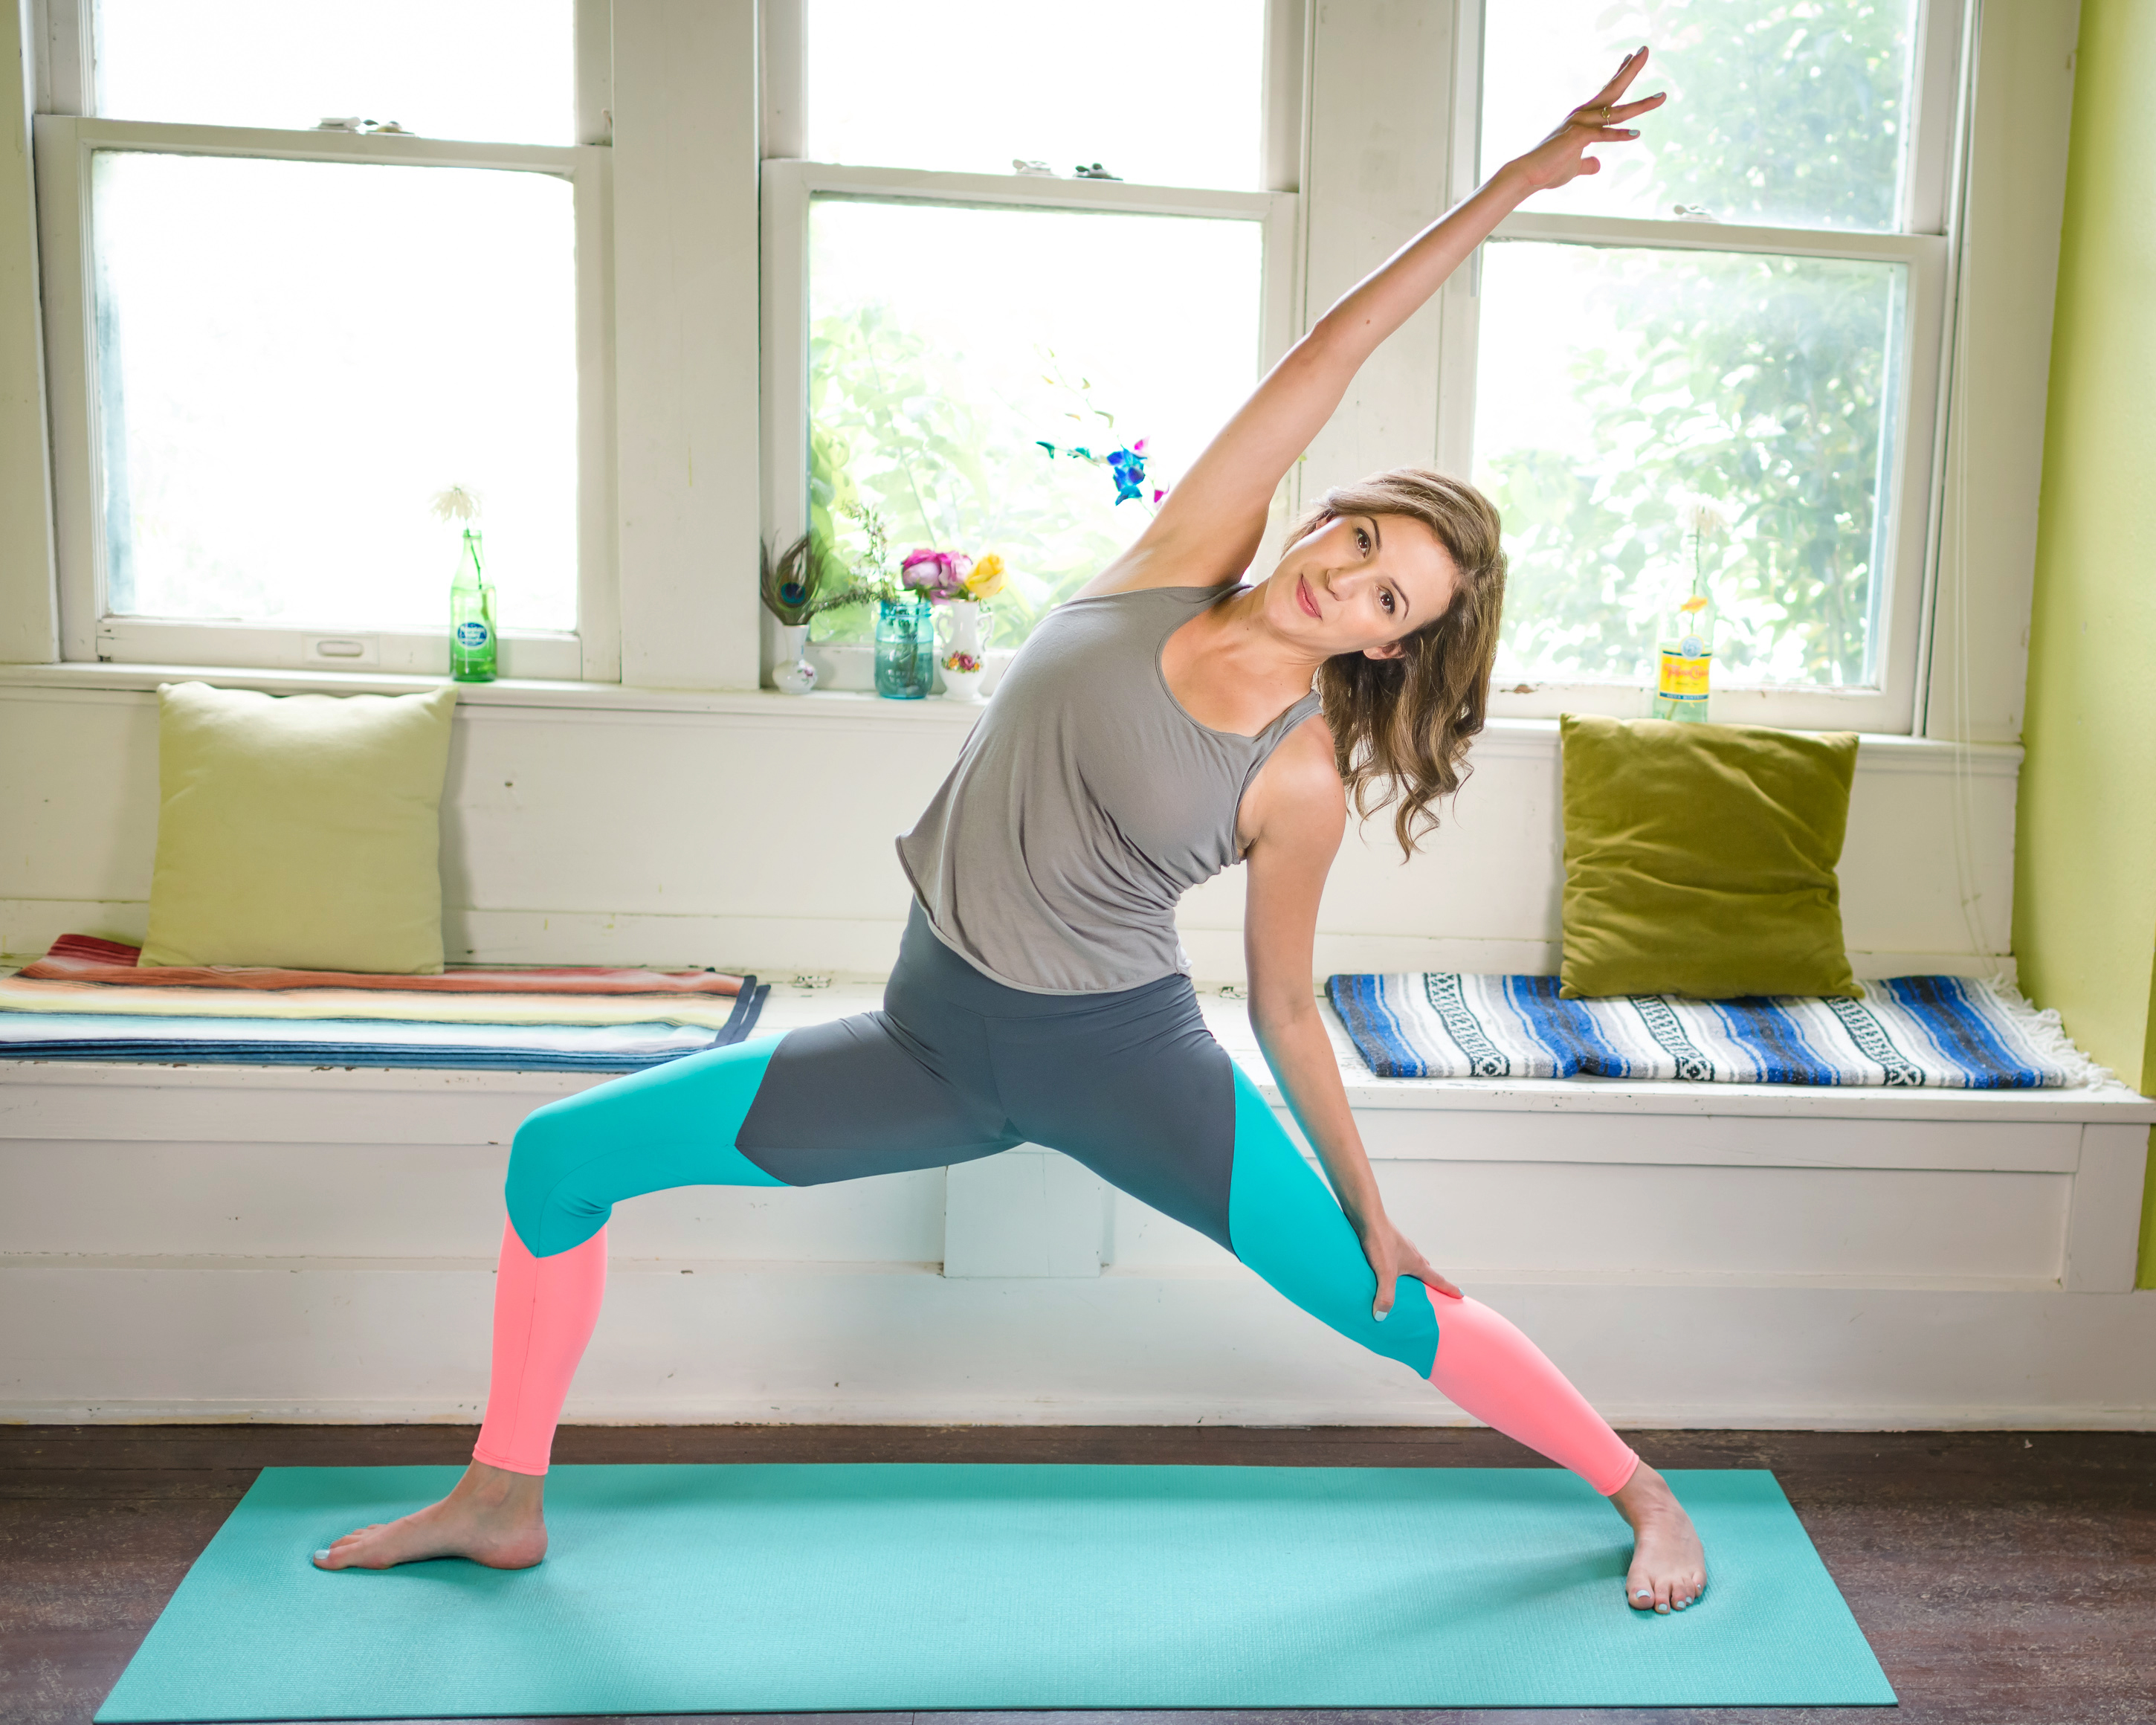 Kick Your Year Off With An At Home Yoga Practice Whole Foods Market